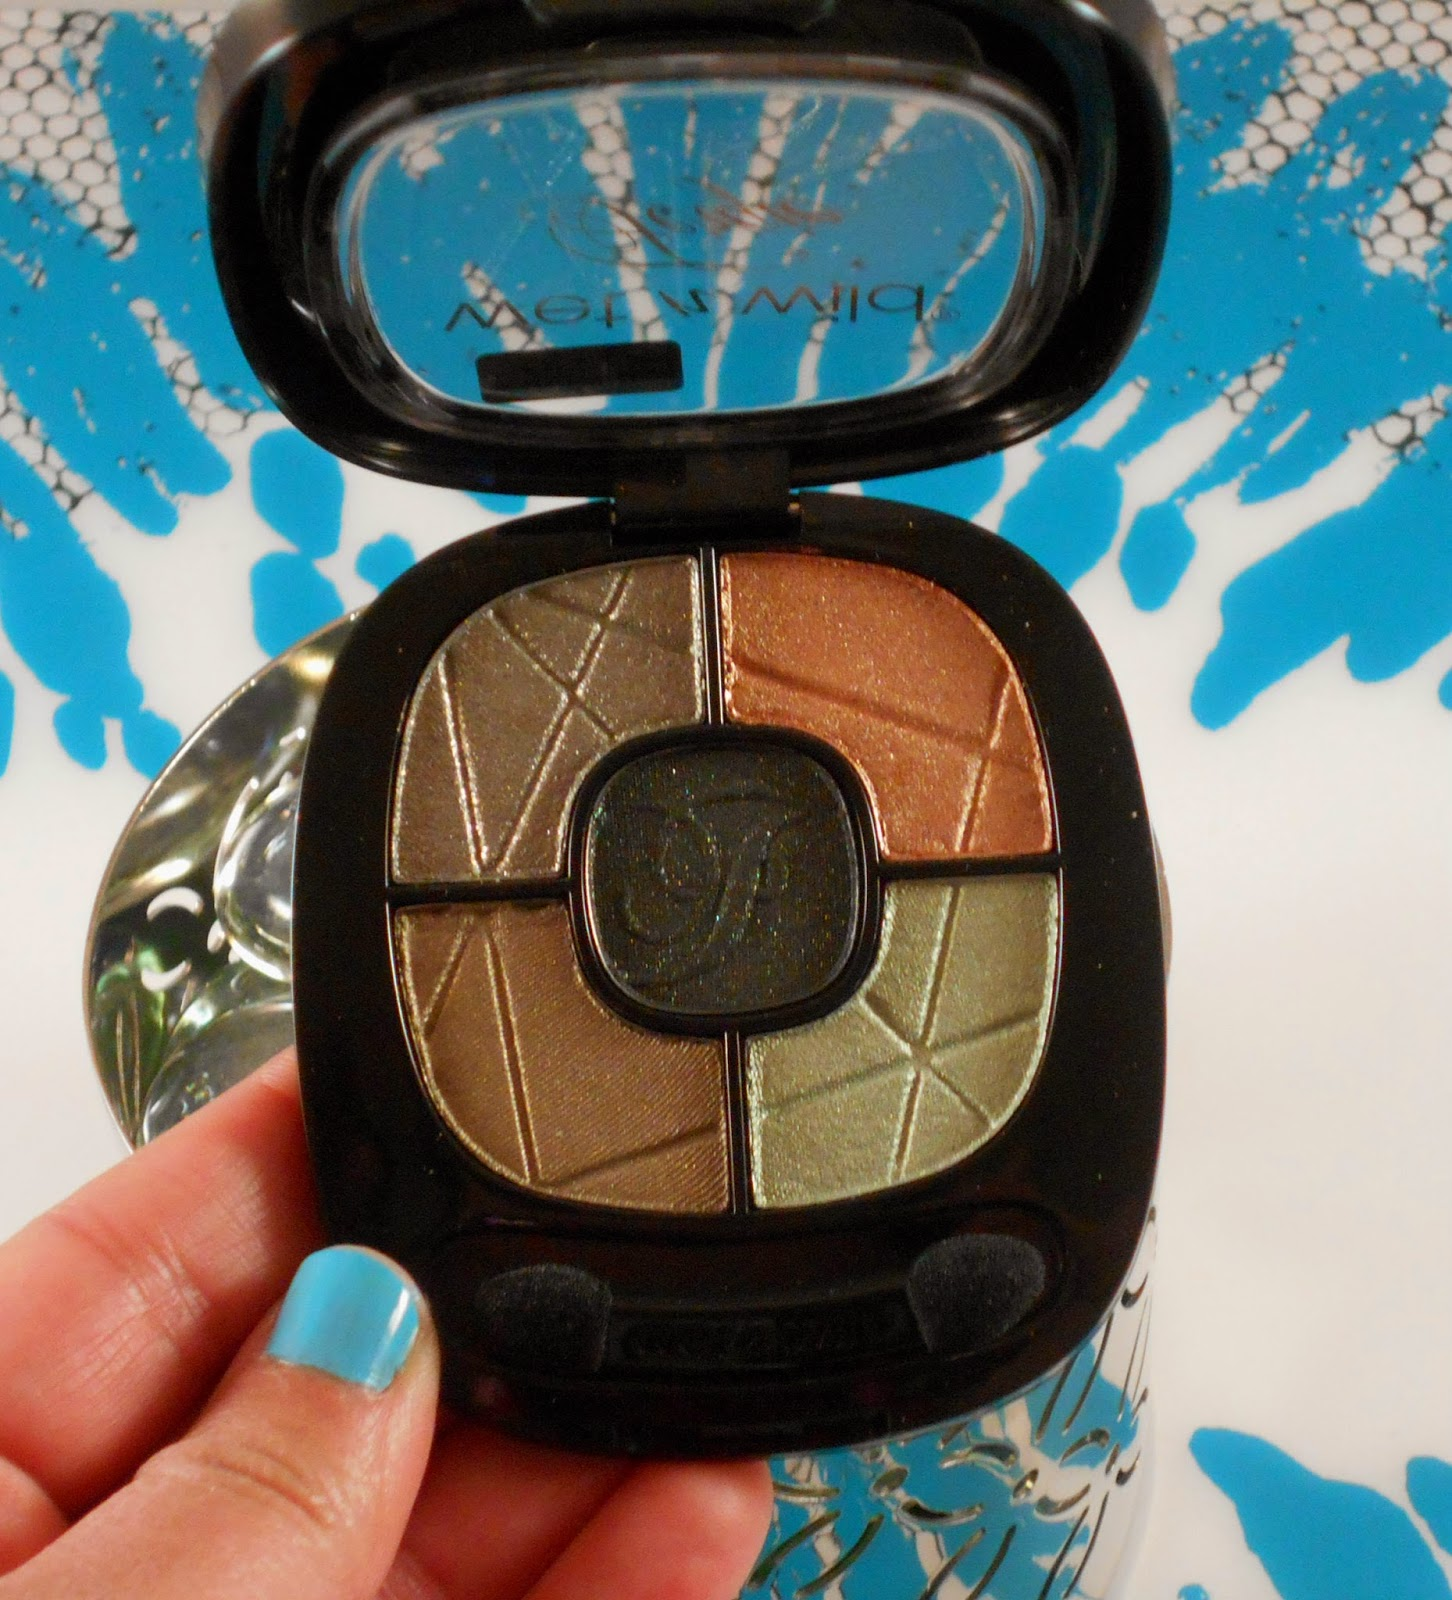 Wet n Wild Fergie Center Stage Limited Edition Collection